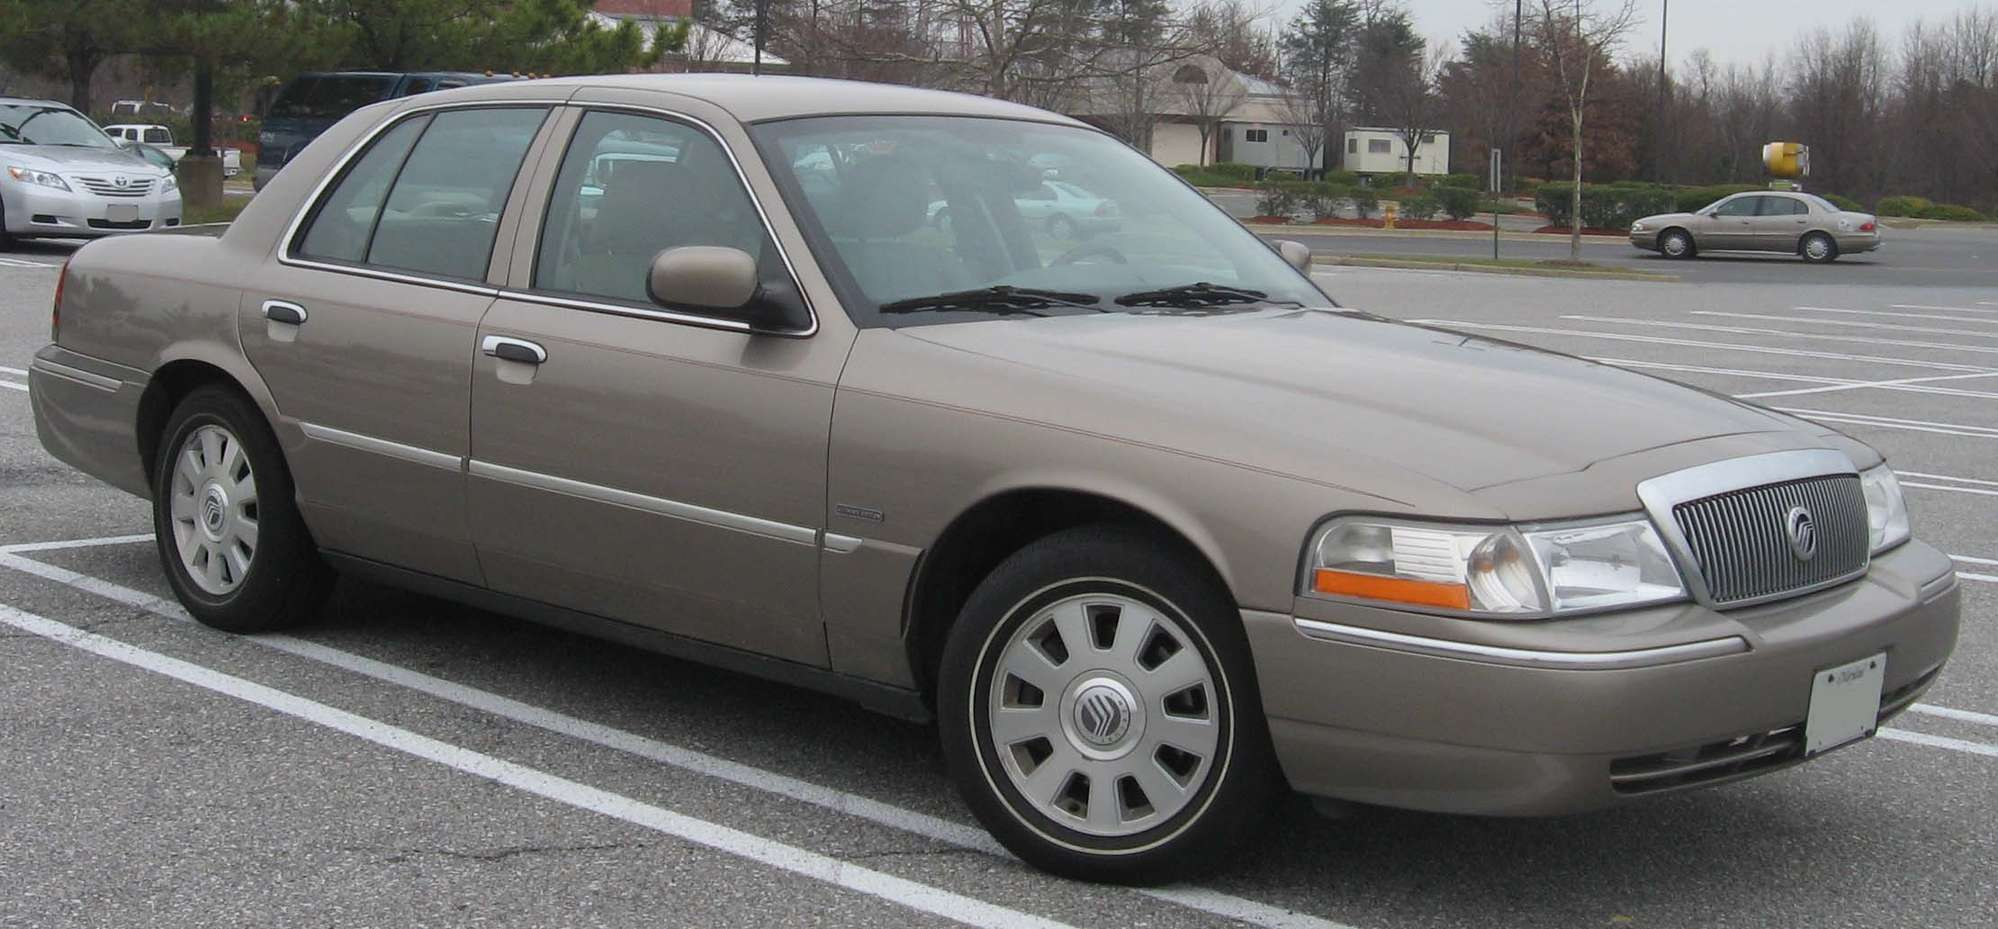 Mercury Grand Marquis #7697187